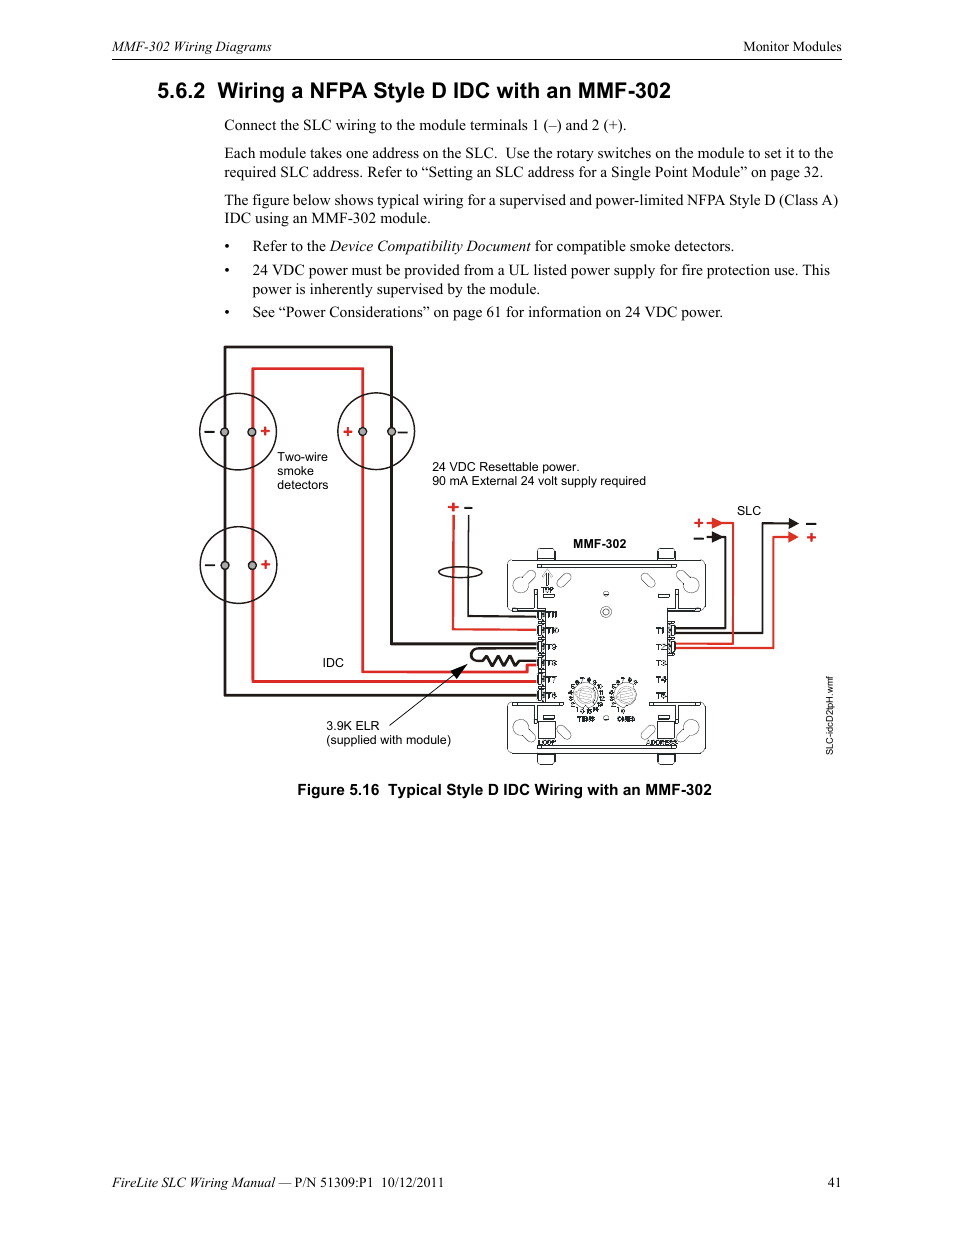 hight resolution of 2 wiring a nfpa style d idc with an mmf 302 wiring a nfpa style d idc with an mmf 302 fire lite slc intelligent control panel wiring manual user manual